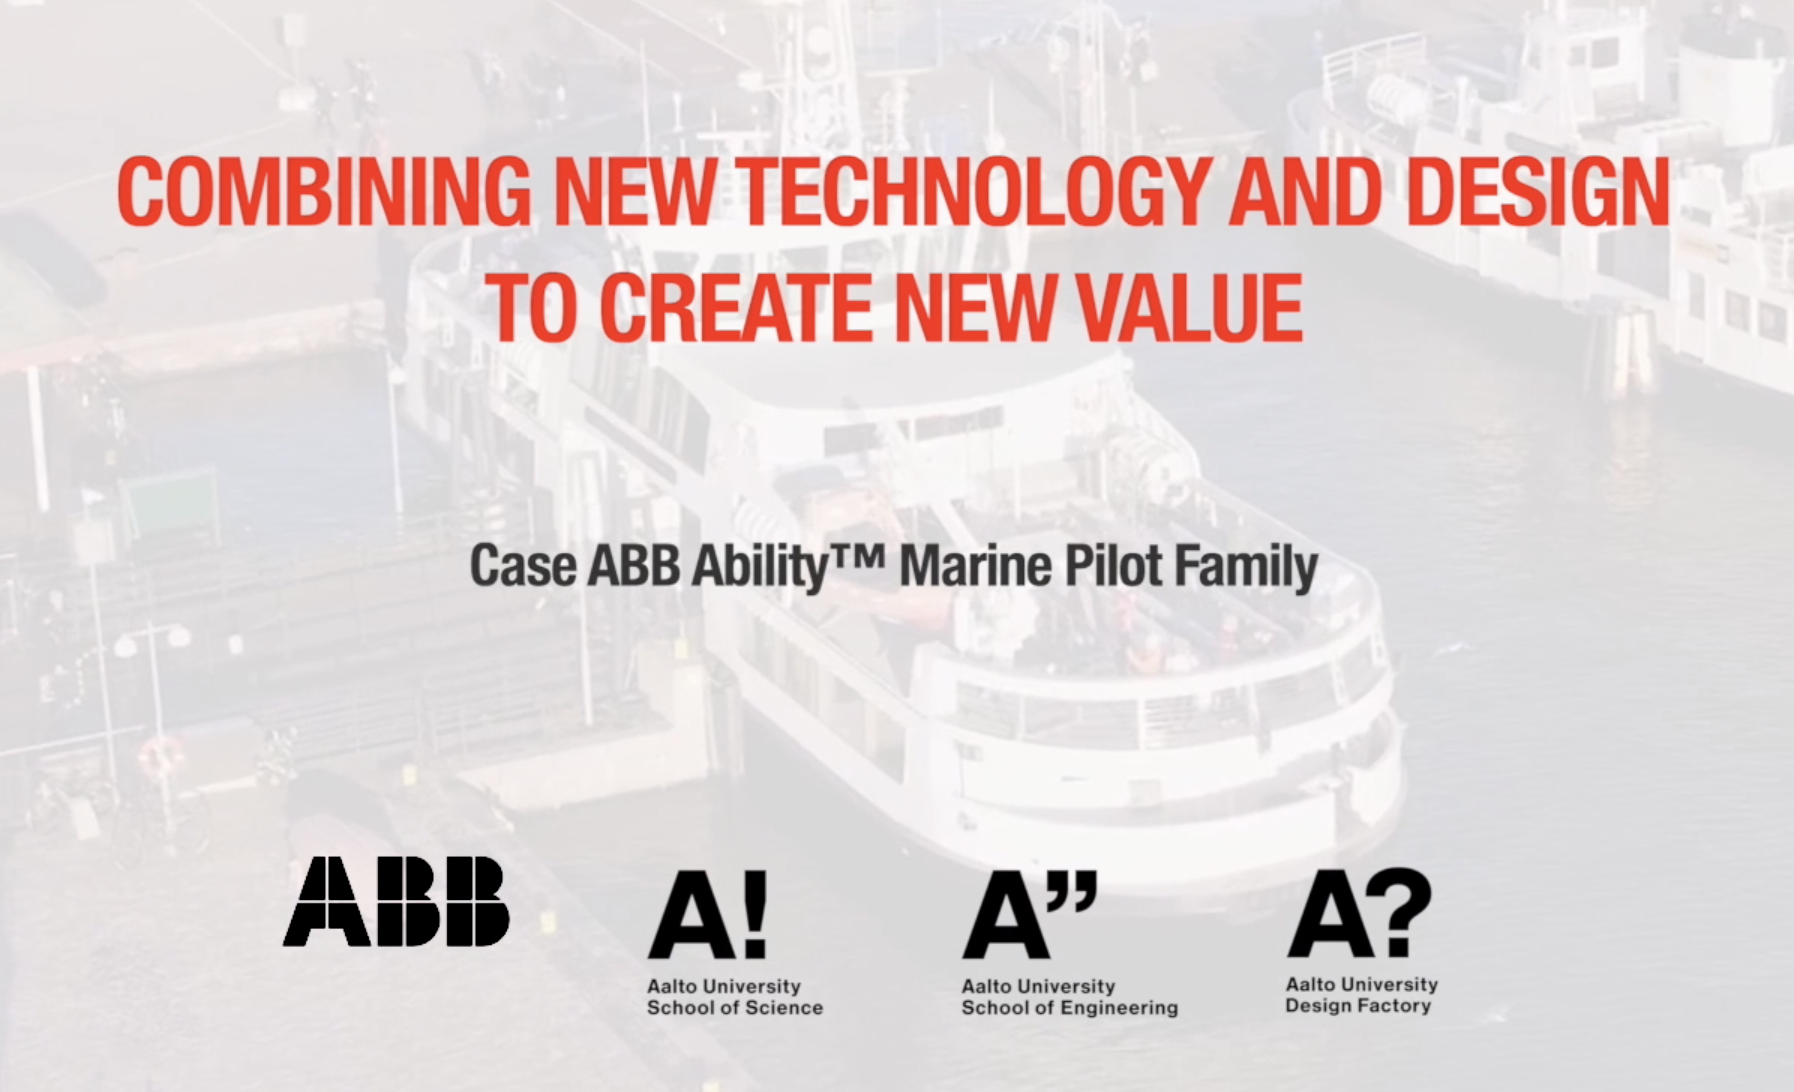 ABB case study used in the course